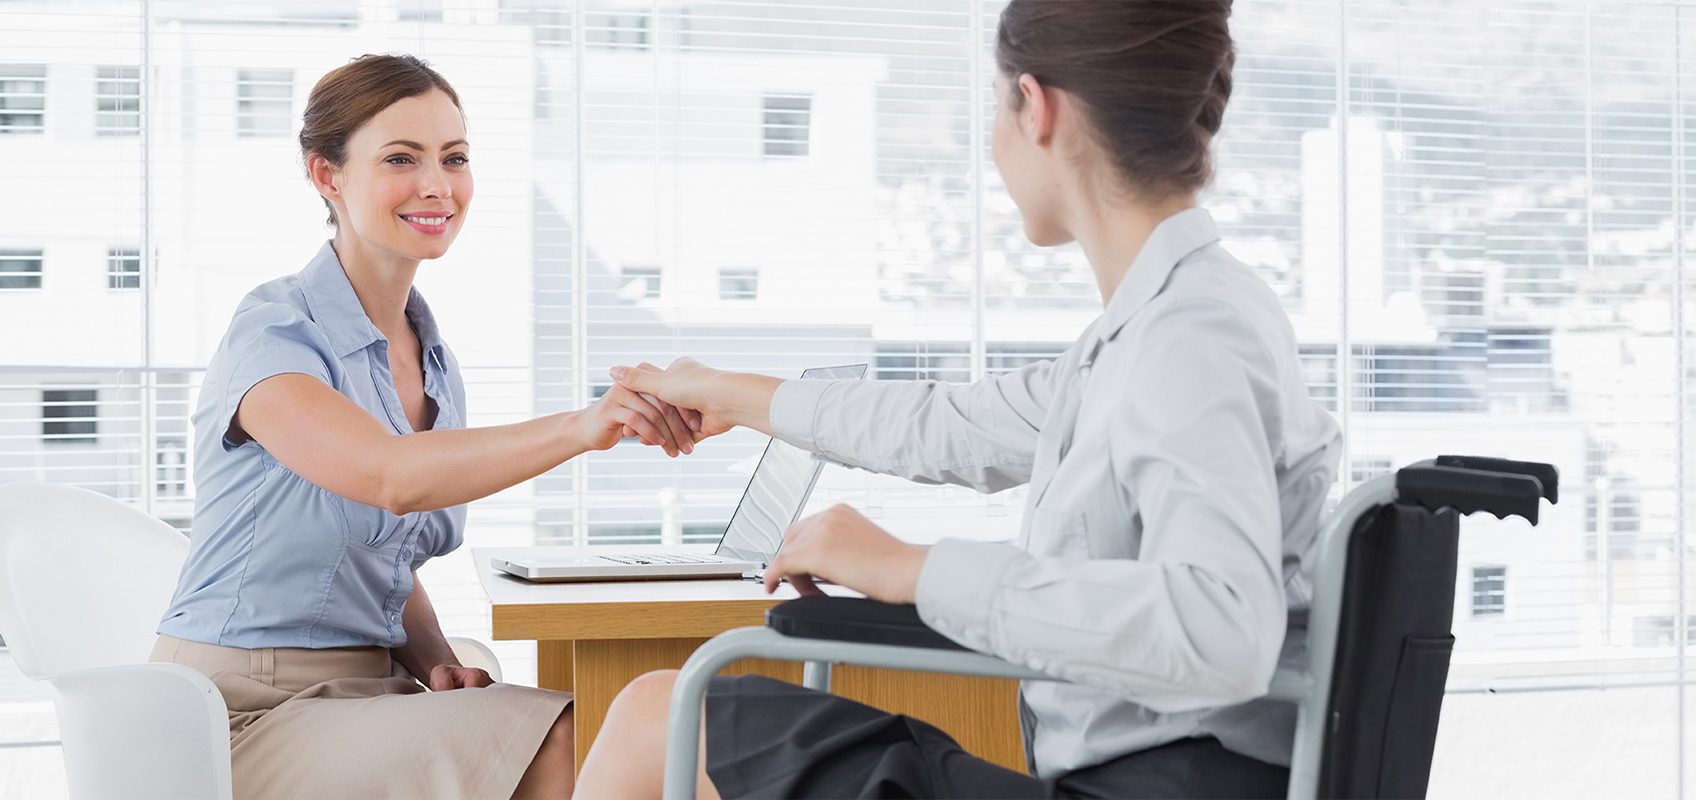 When it comes to hiring be sure to not overlook potential legal pitfalls in your job application, pre-employment testing, and interviewing process.